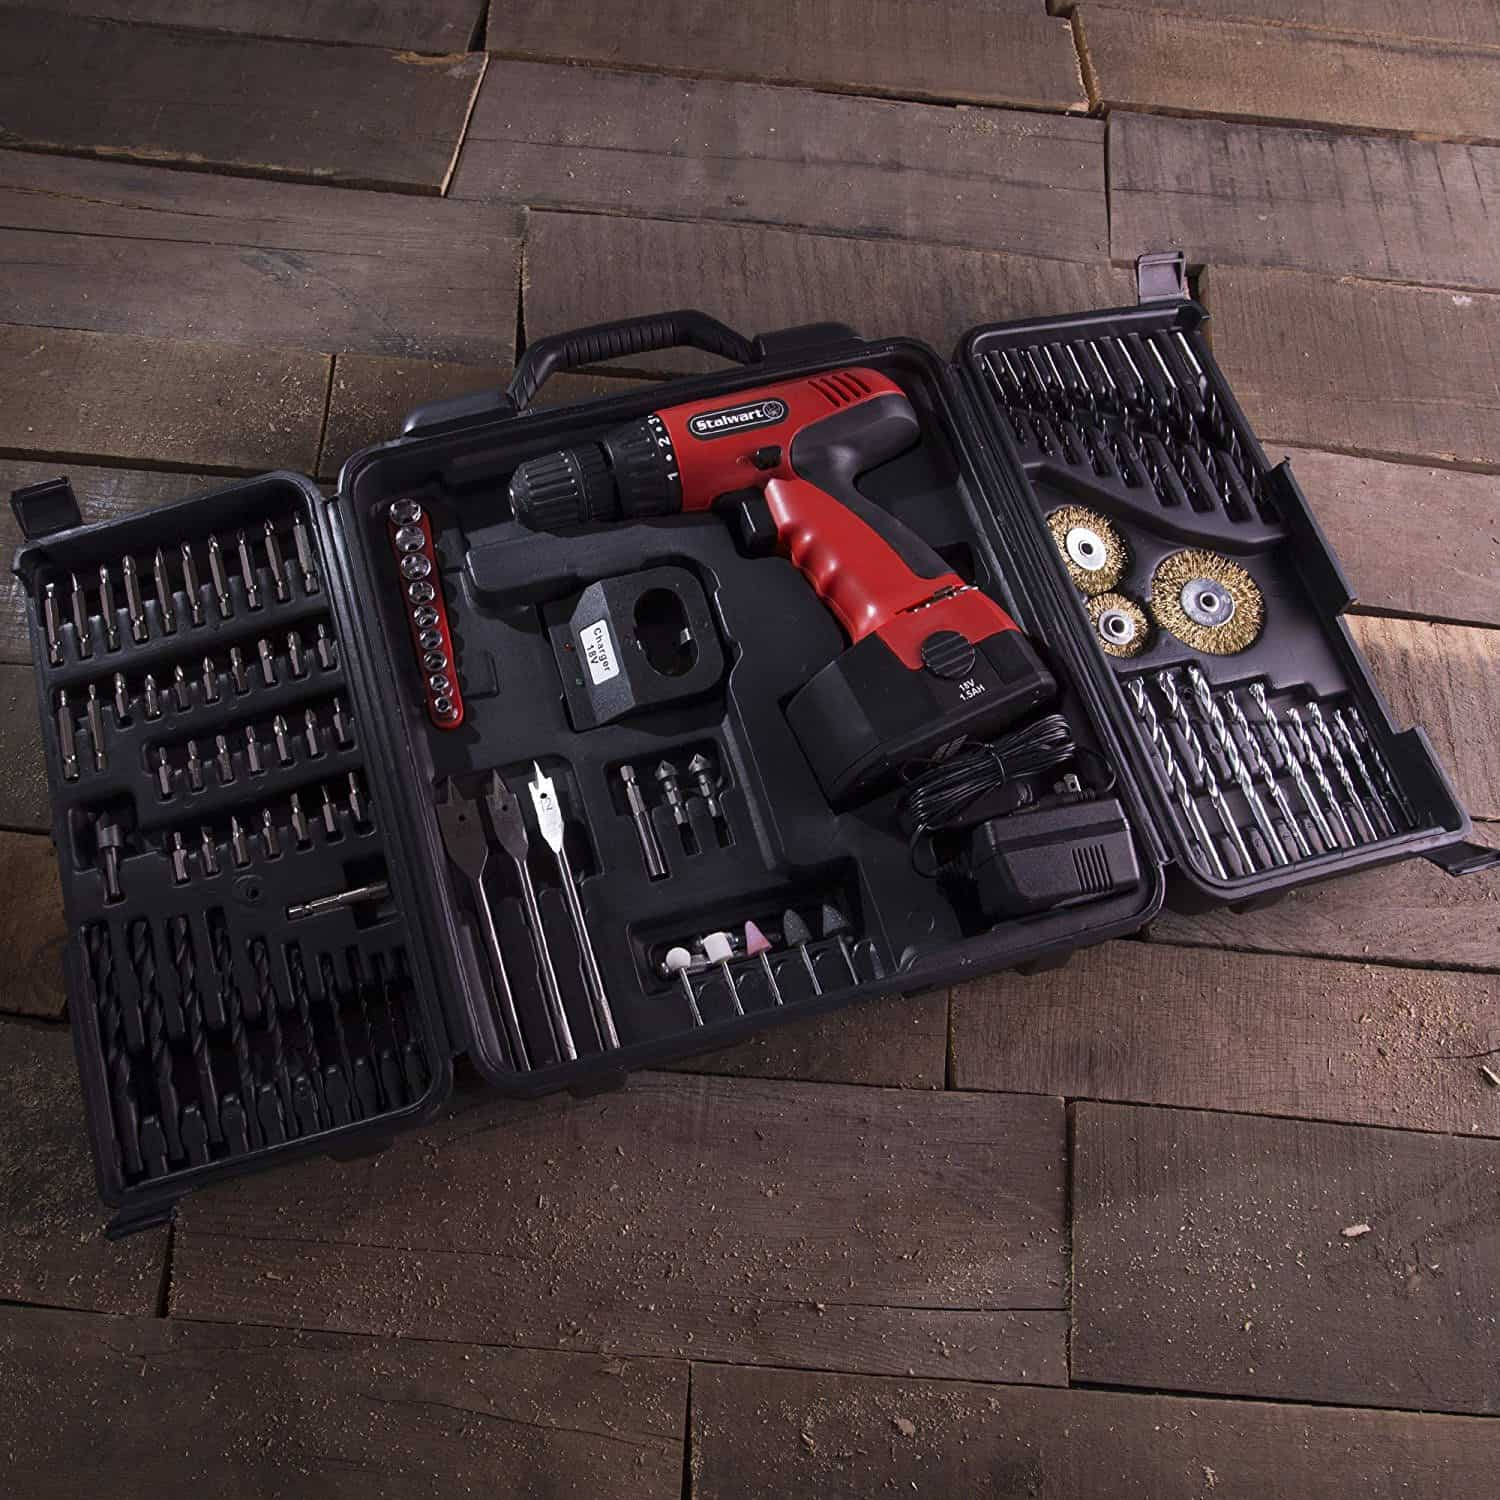 Different types of in a toolbox.